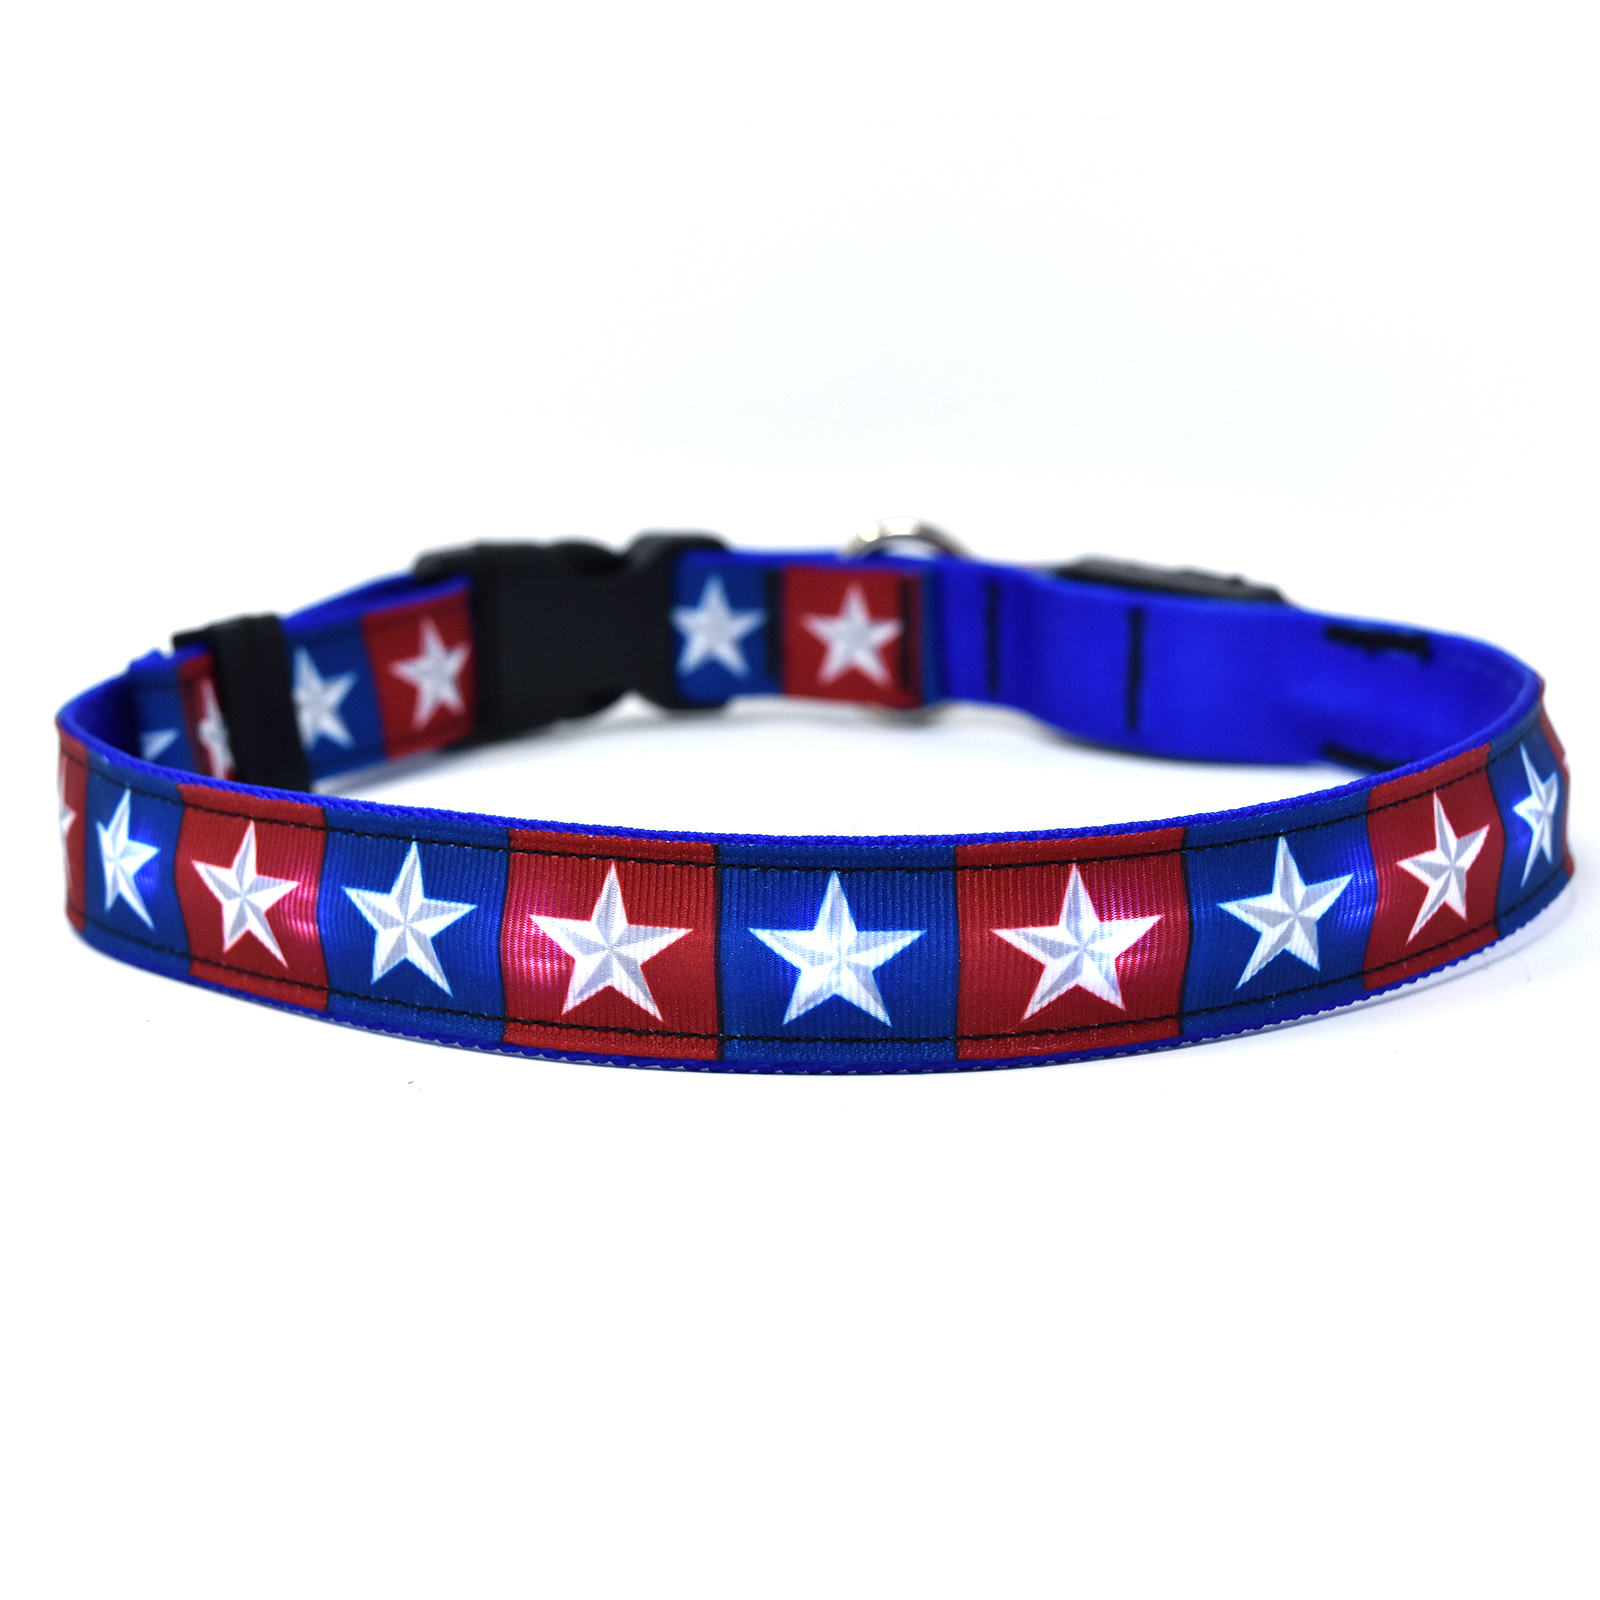 Colonial Stars ORION LED Dog Collar